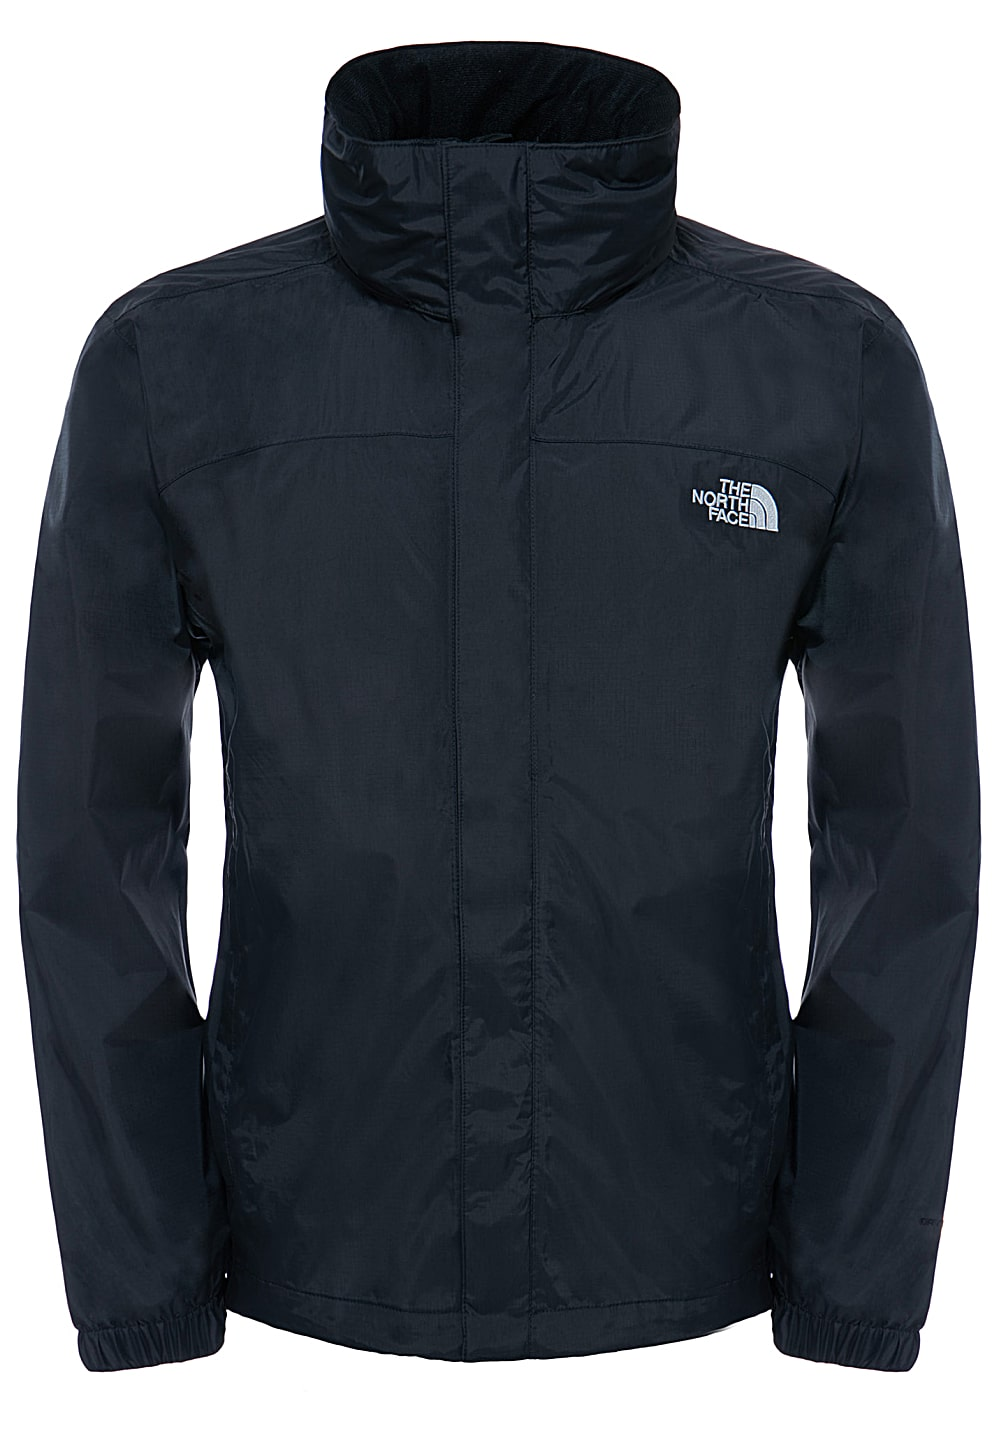 the north face resolve funktionsjacke f r herren schwarz planet sports. Black Bedroom Furniture Sets. Home Design Ideas